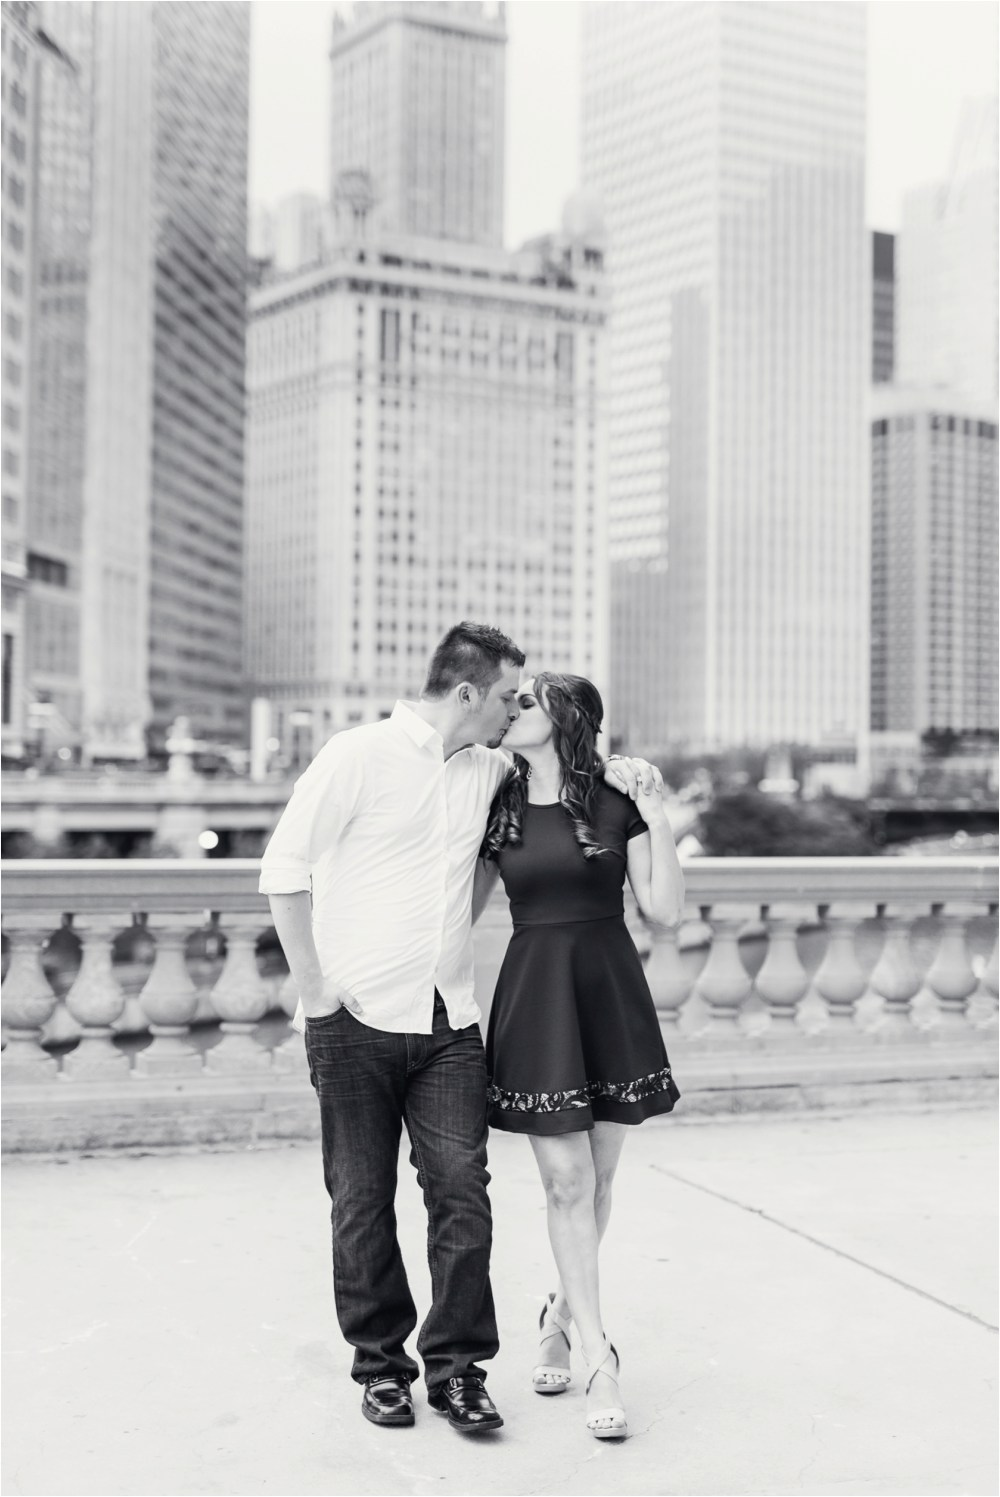 chicago-ilinois-michigna-ave-city-downtown-engagement-photo-30.jpg